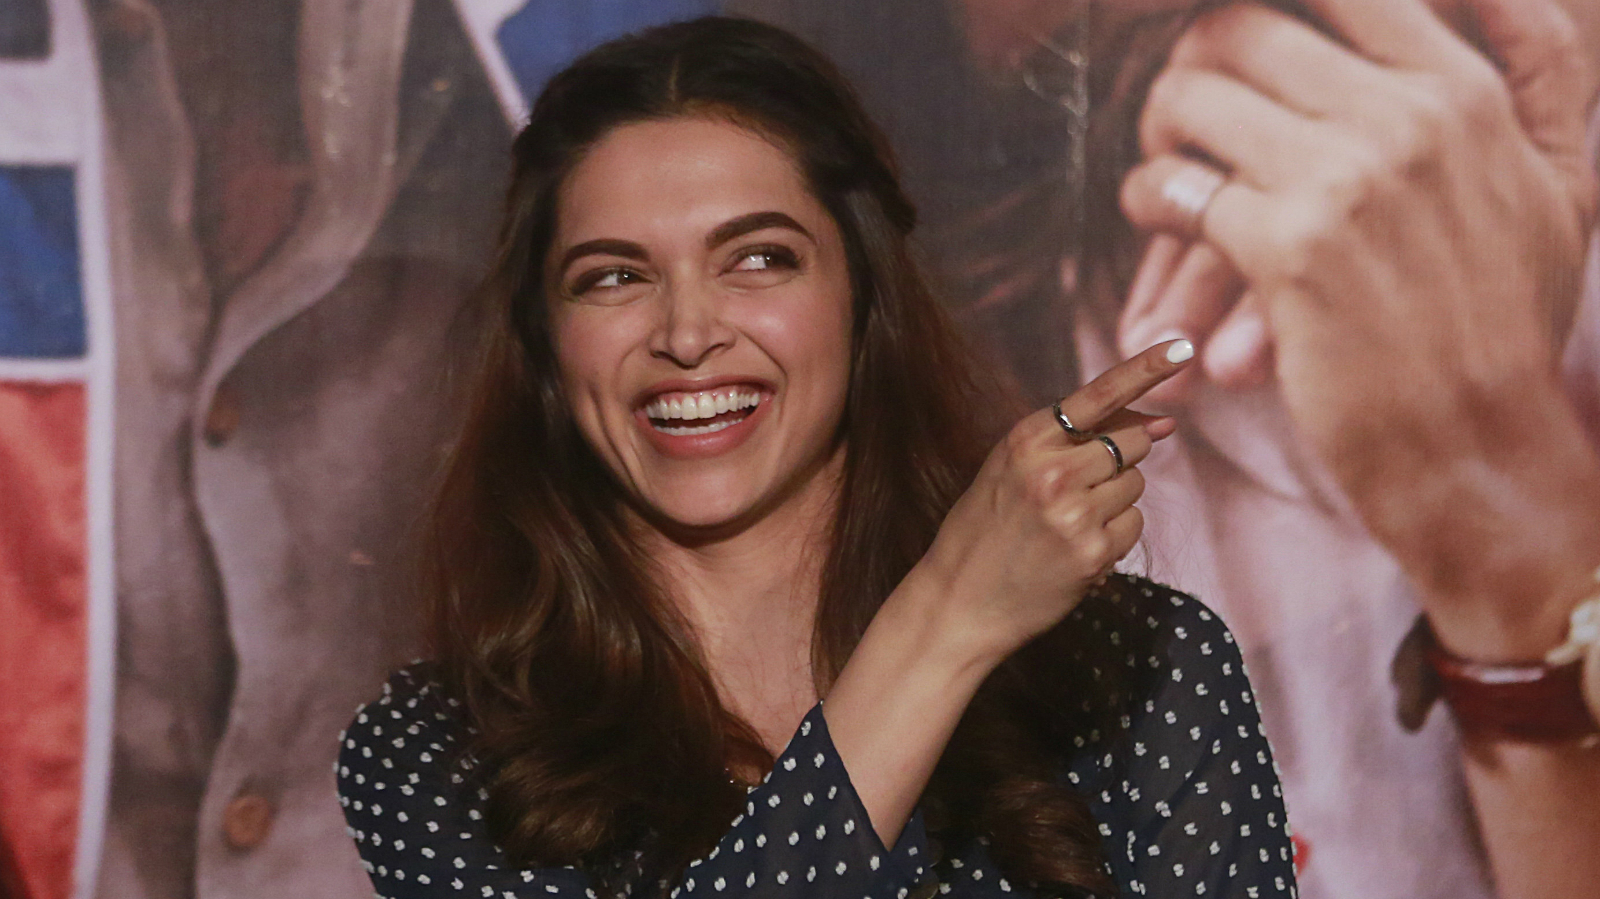 Bollywood actor Deepika Padukone gestures during the trailer launch of her film 'Tamasha' in Mumbai, India,Tuesday, Sept. 22, 2015. The film is scheduled for release on November 27, 2015 (AP Photo/Rafiq Maqbool)